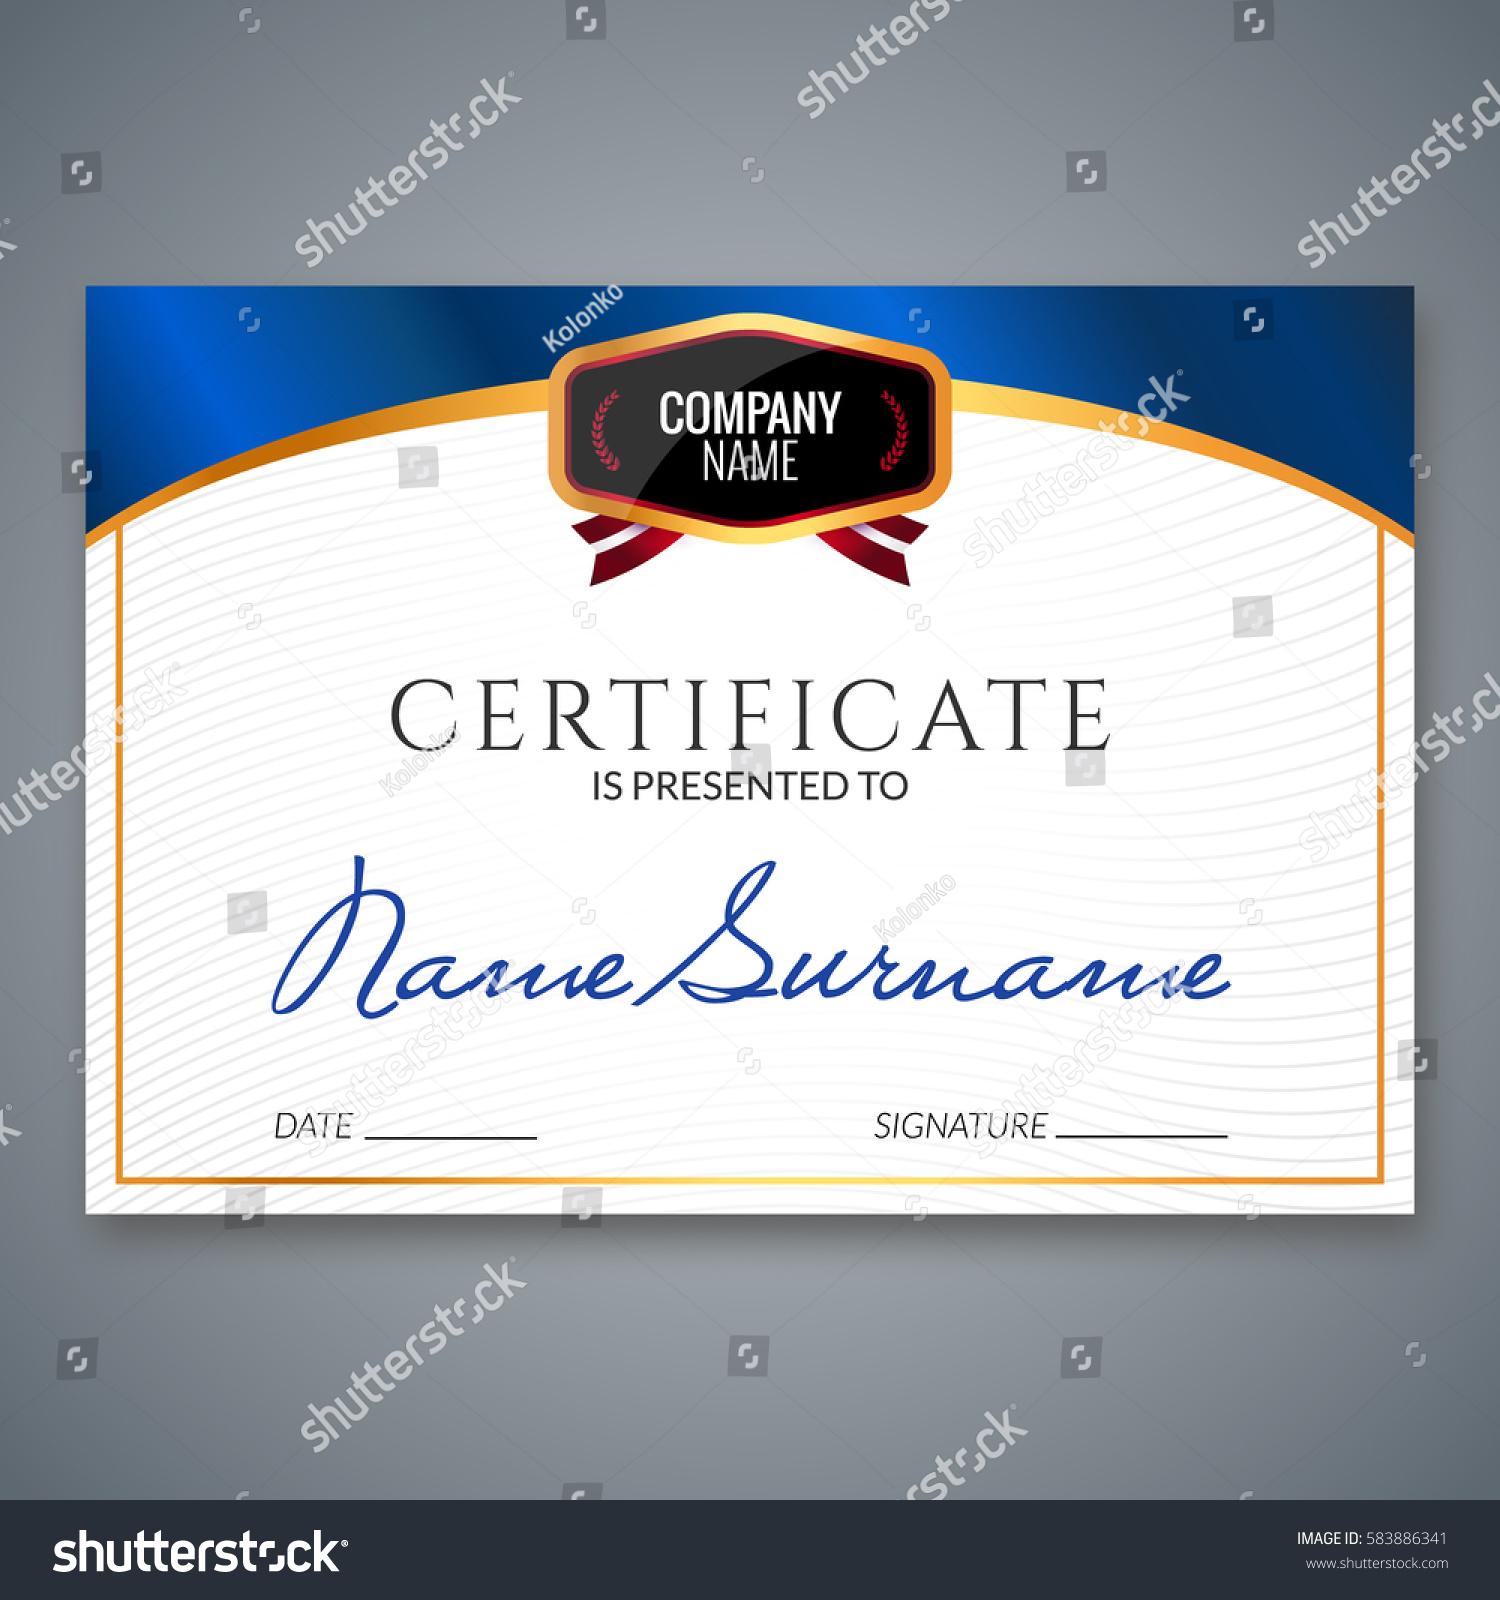 certificate template luxury award vector business stock vector 583886341 shutterstock. Black Bedroom Furniture Sets. Home Design Ideas